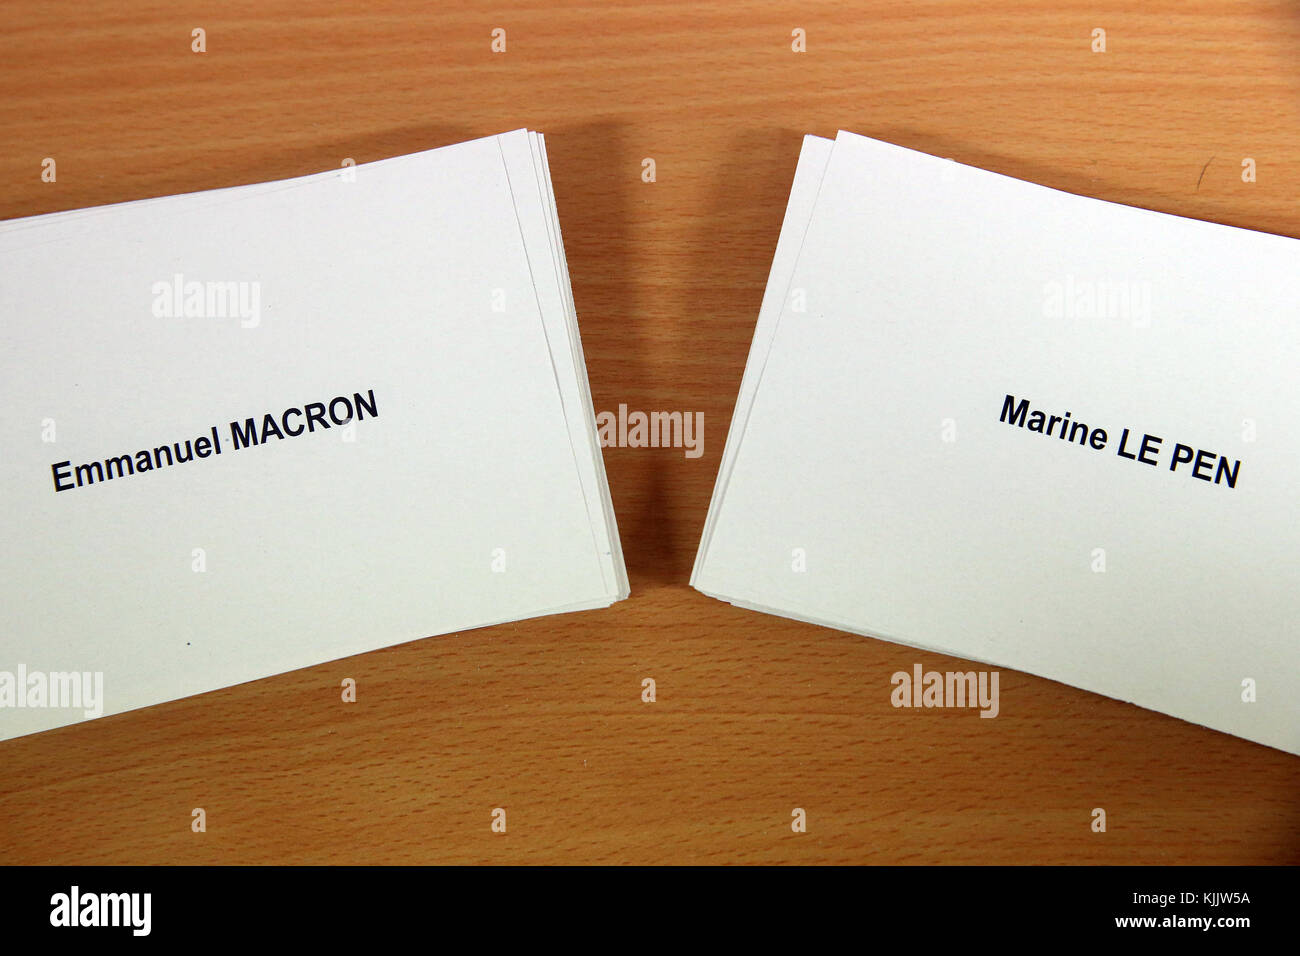 2017 French presidential election. Polling Booth. Marine Le Pen VS Emamnuel Macron.  France. - Stock Image